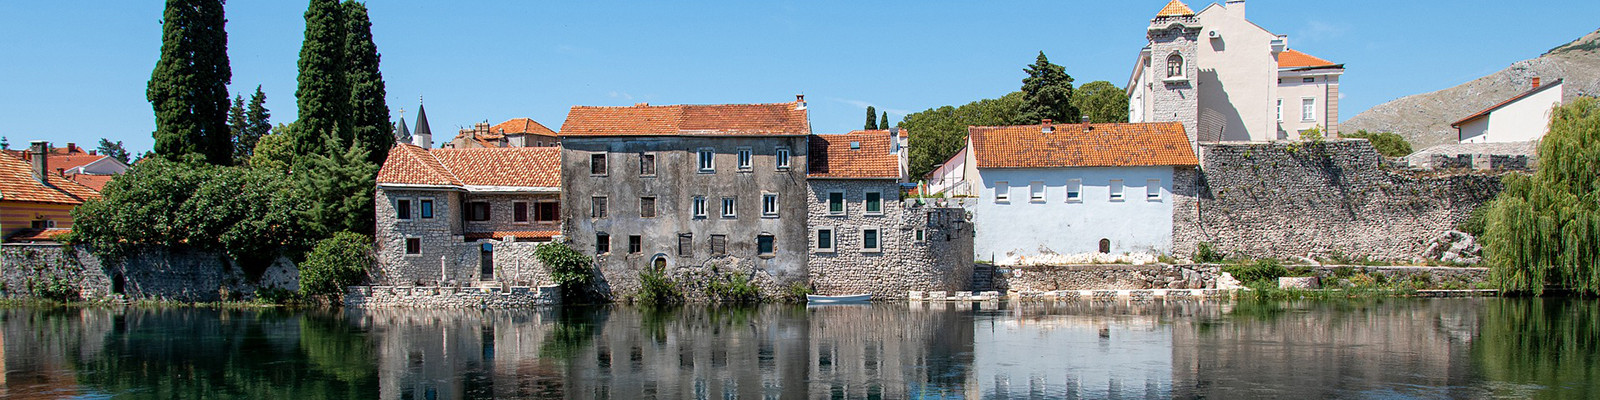 History of Trebinje